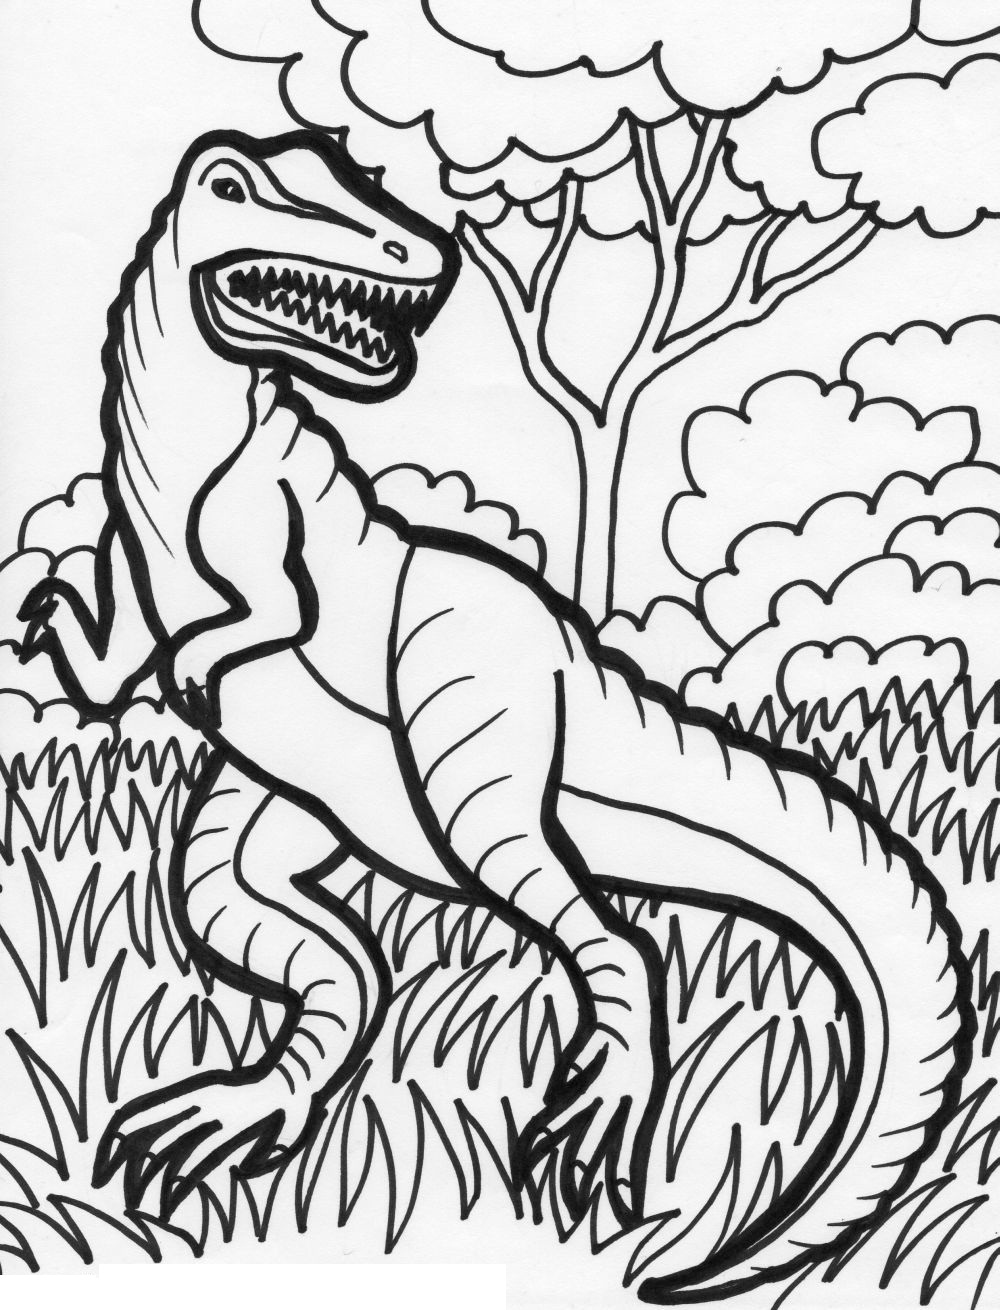 Free Printable Dinosaur Coloring Pages For Kids Dinosaur Coloring Pages